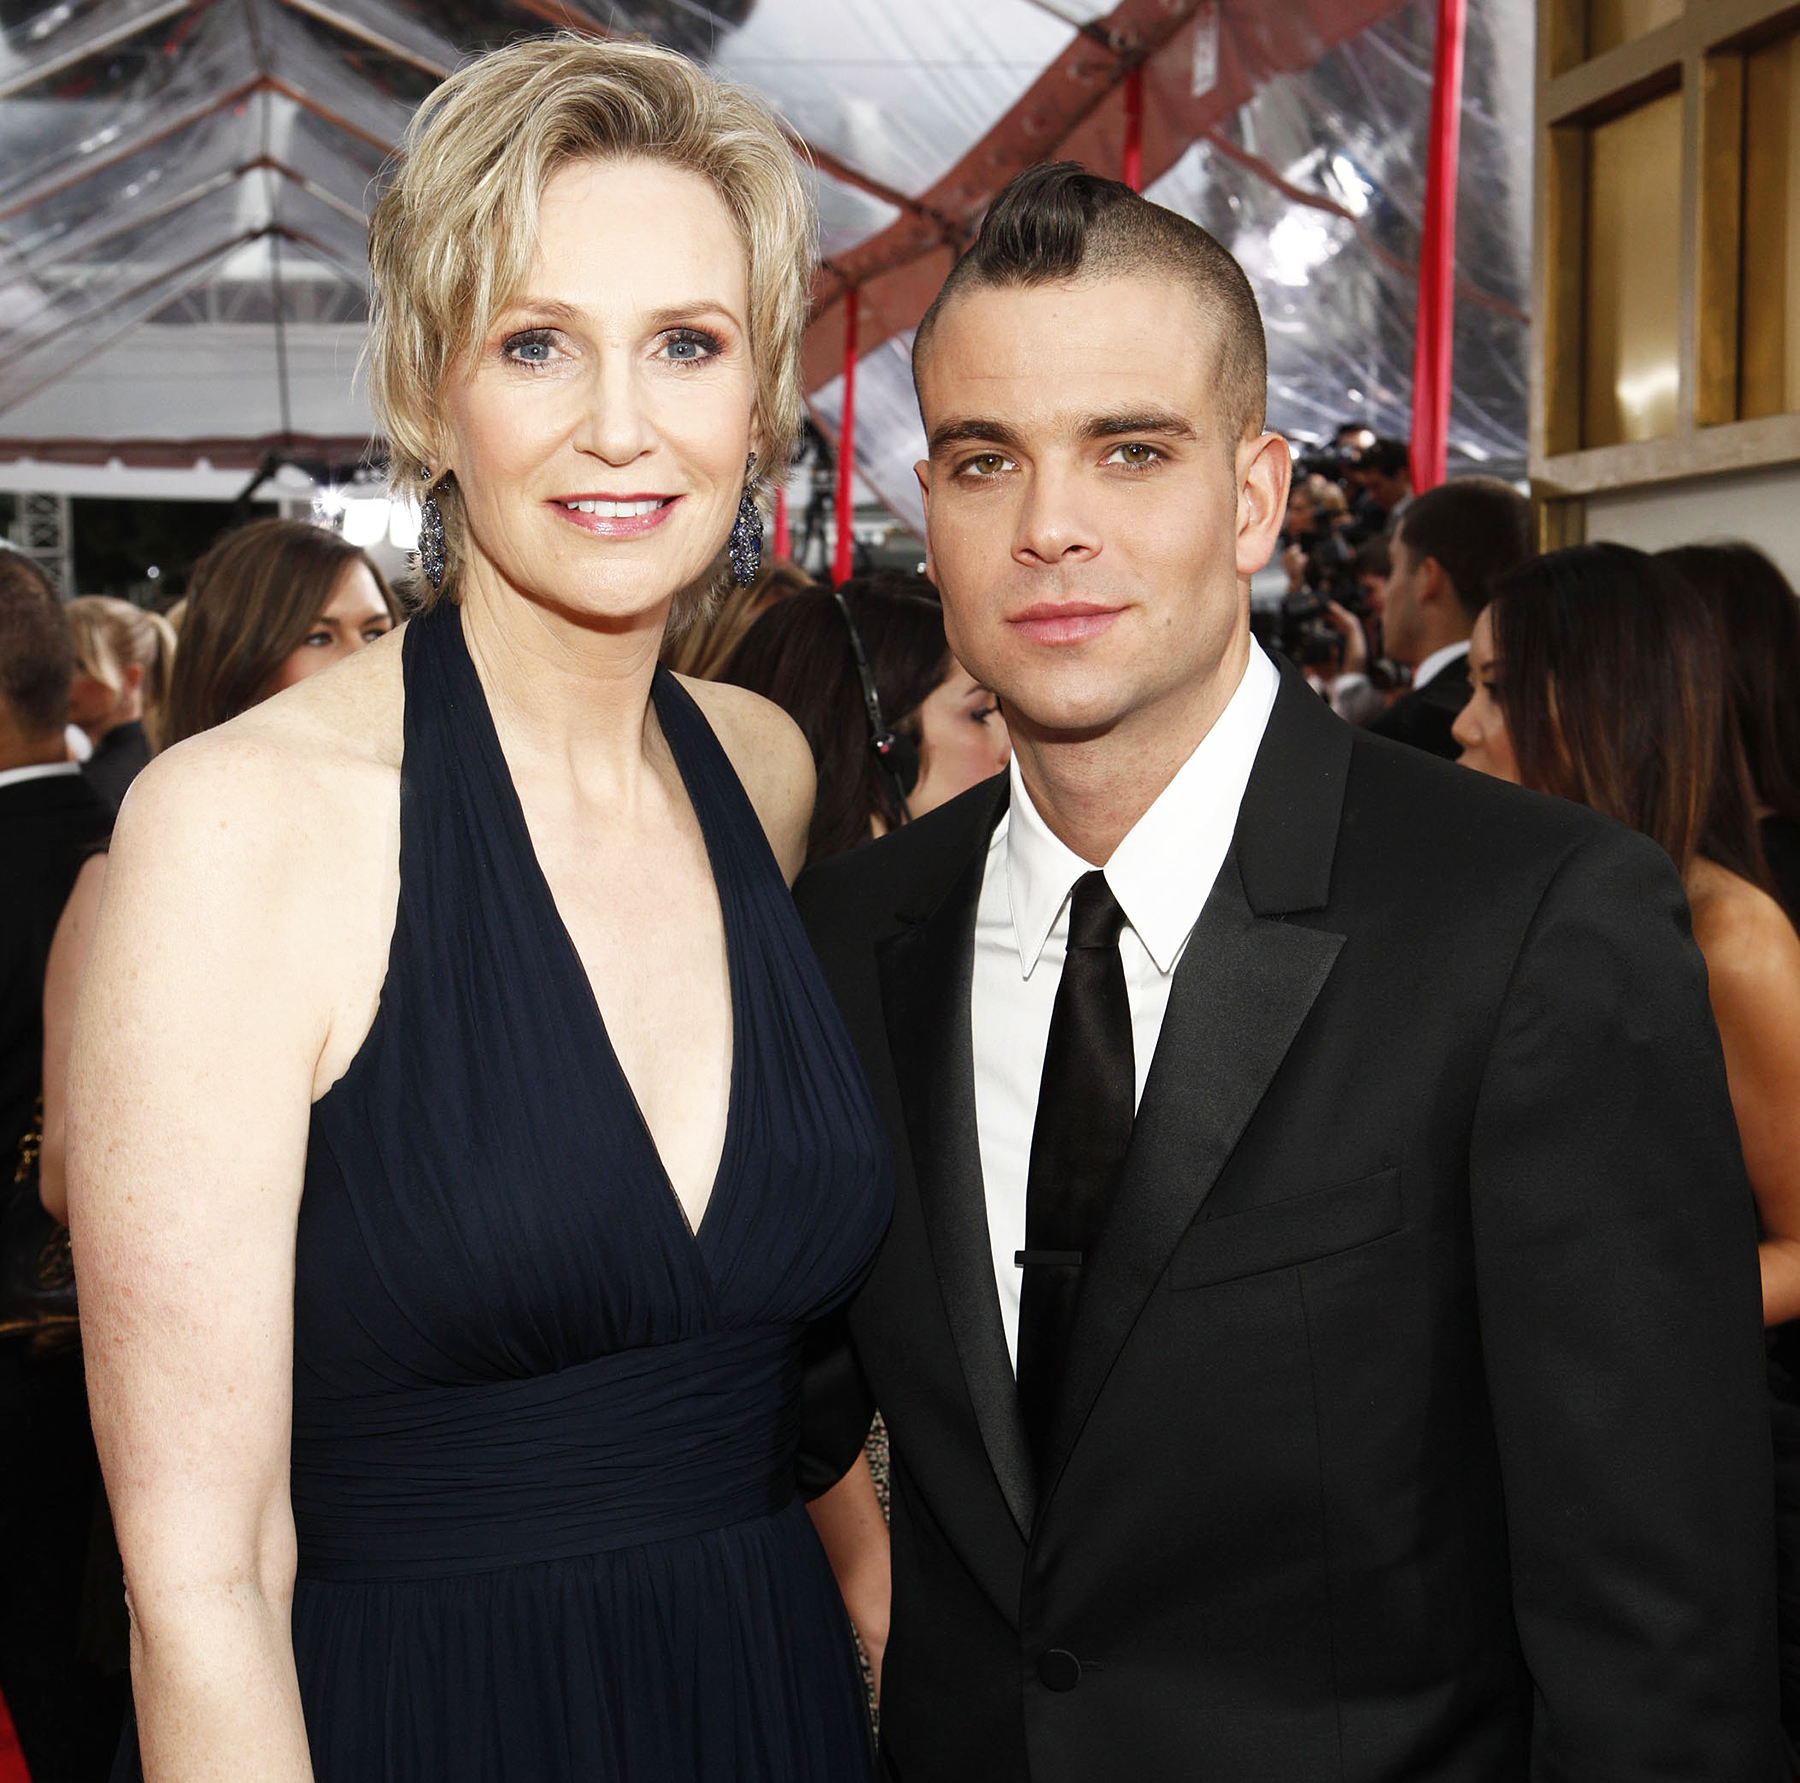 Jane Lynch Mark Salling